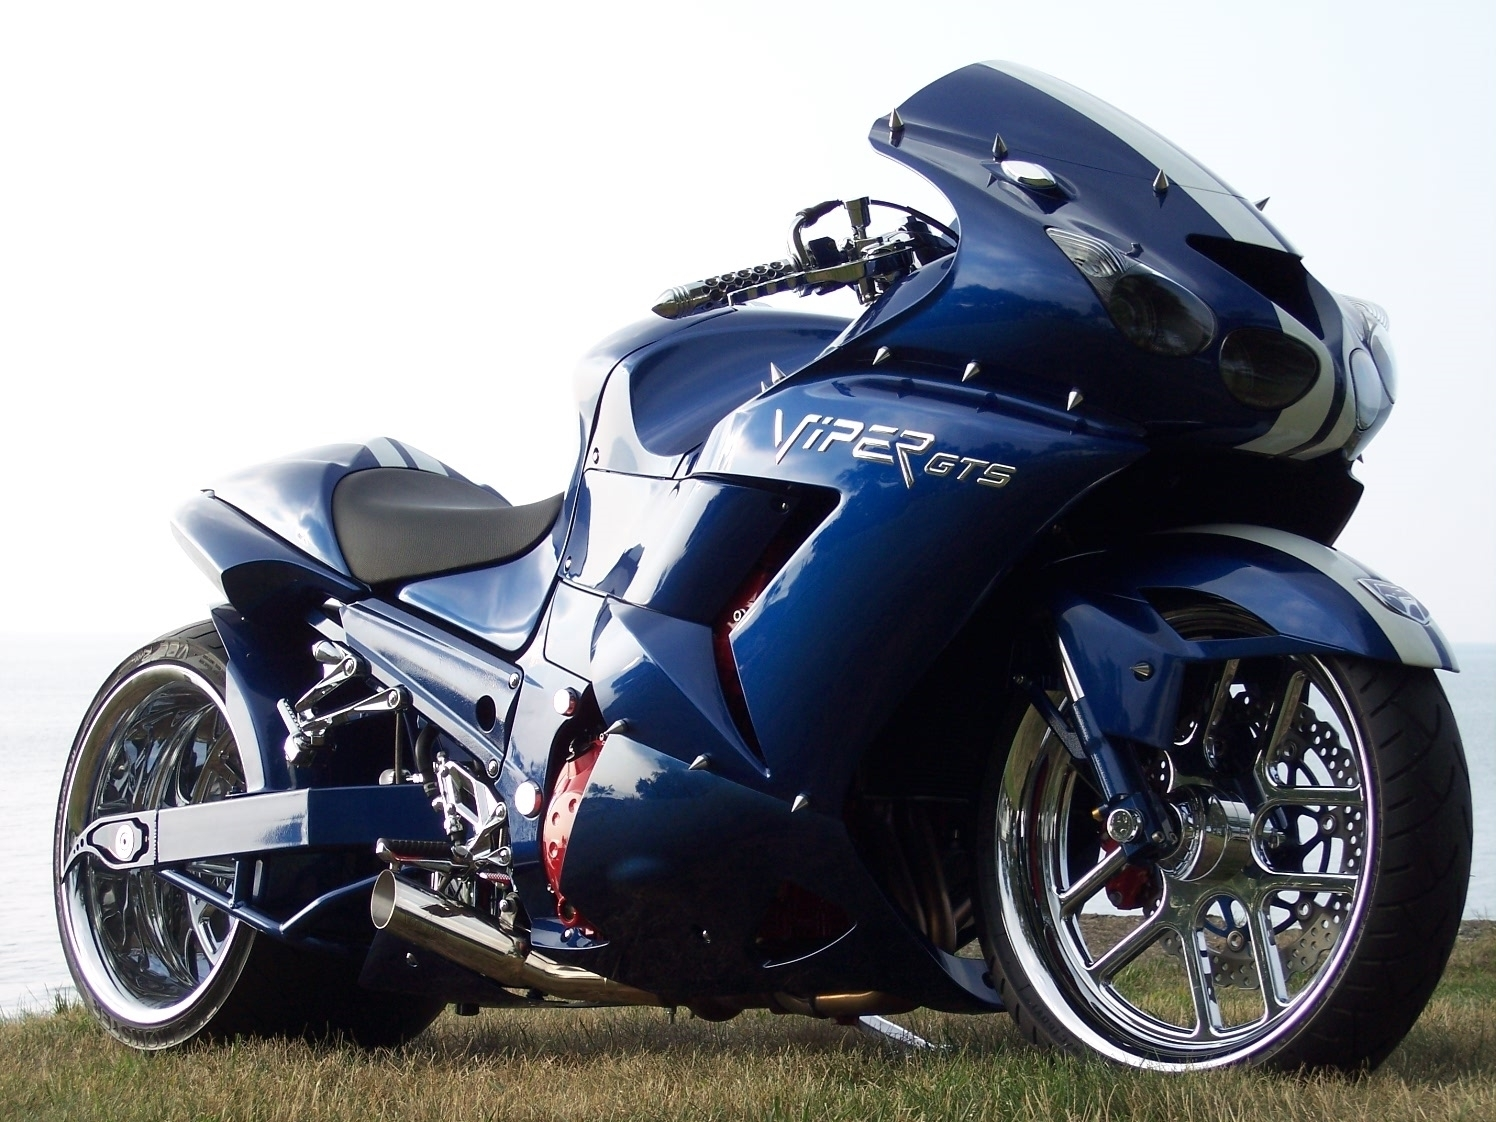 Picture of Kawasaki ZX-12/14 2000-2018